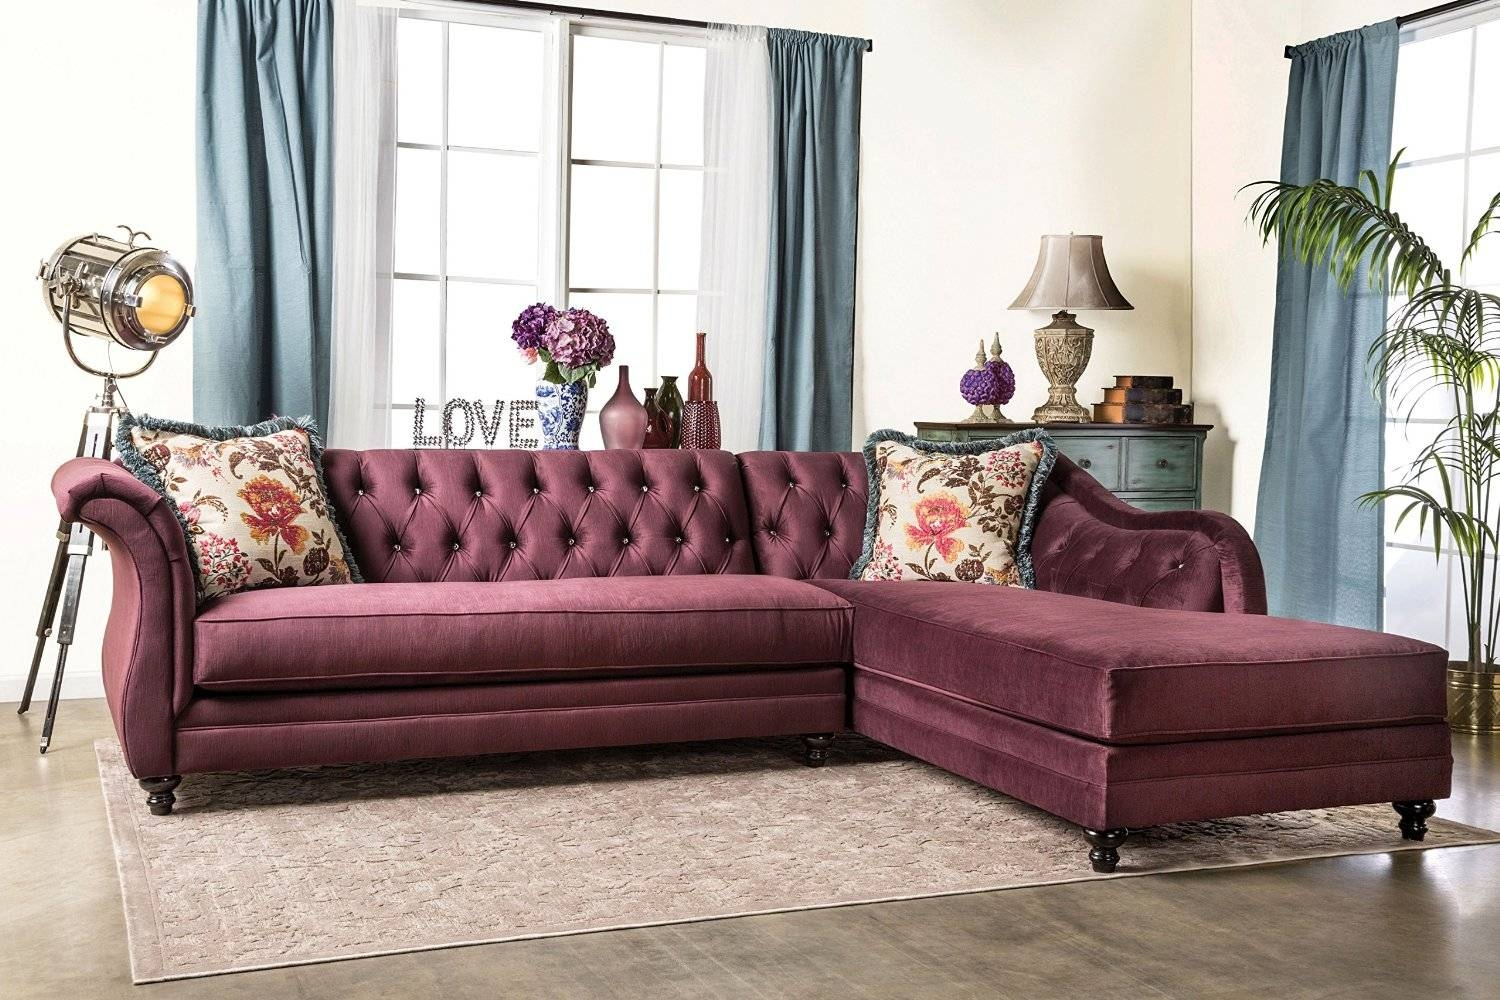 25 Best Chesterfield Sofas To Buy In 2017 for Small Chesterfield Sofas (Image 2 of 30)